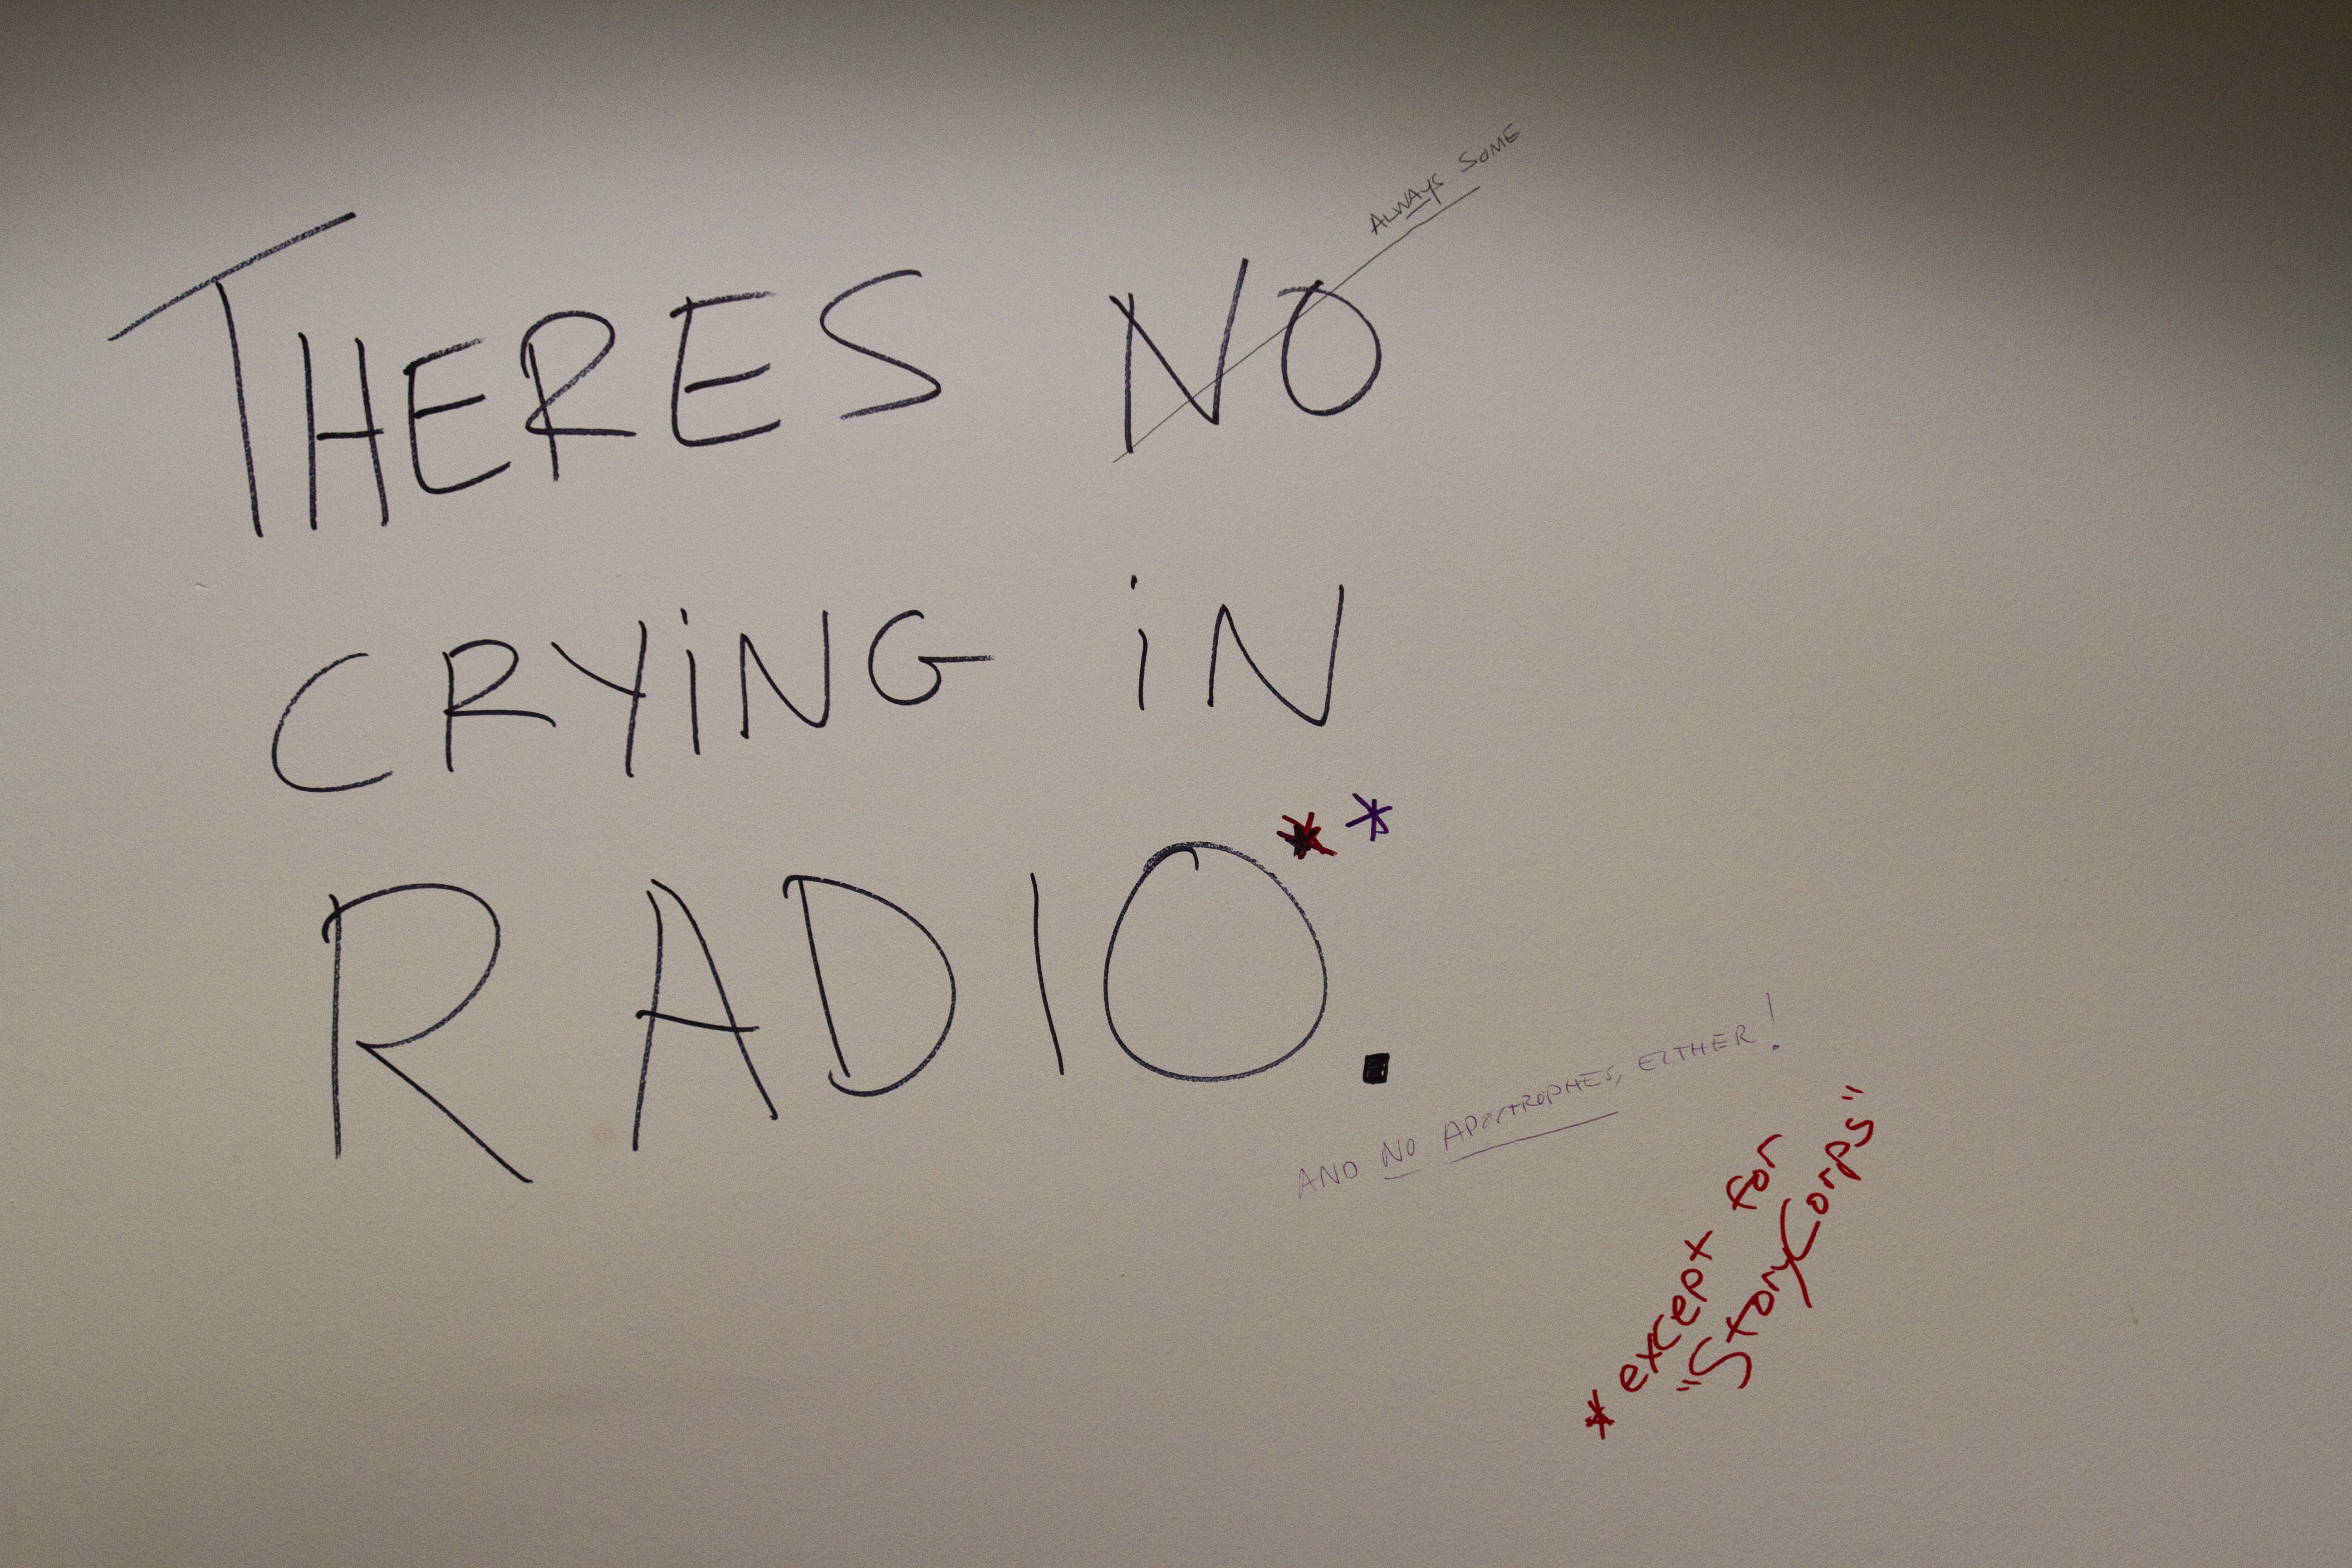 """There's no crying in radio. (Except for StoryCorps)"""